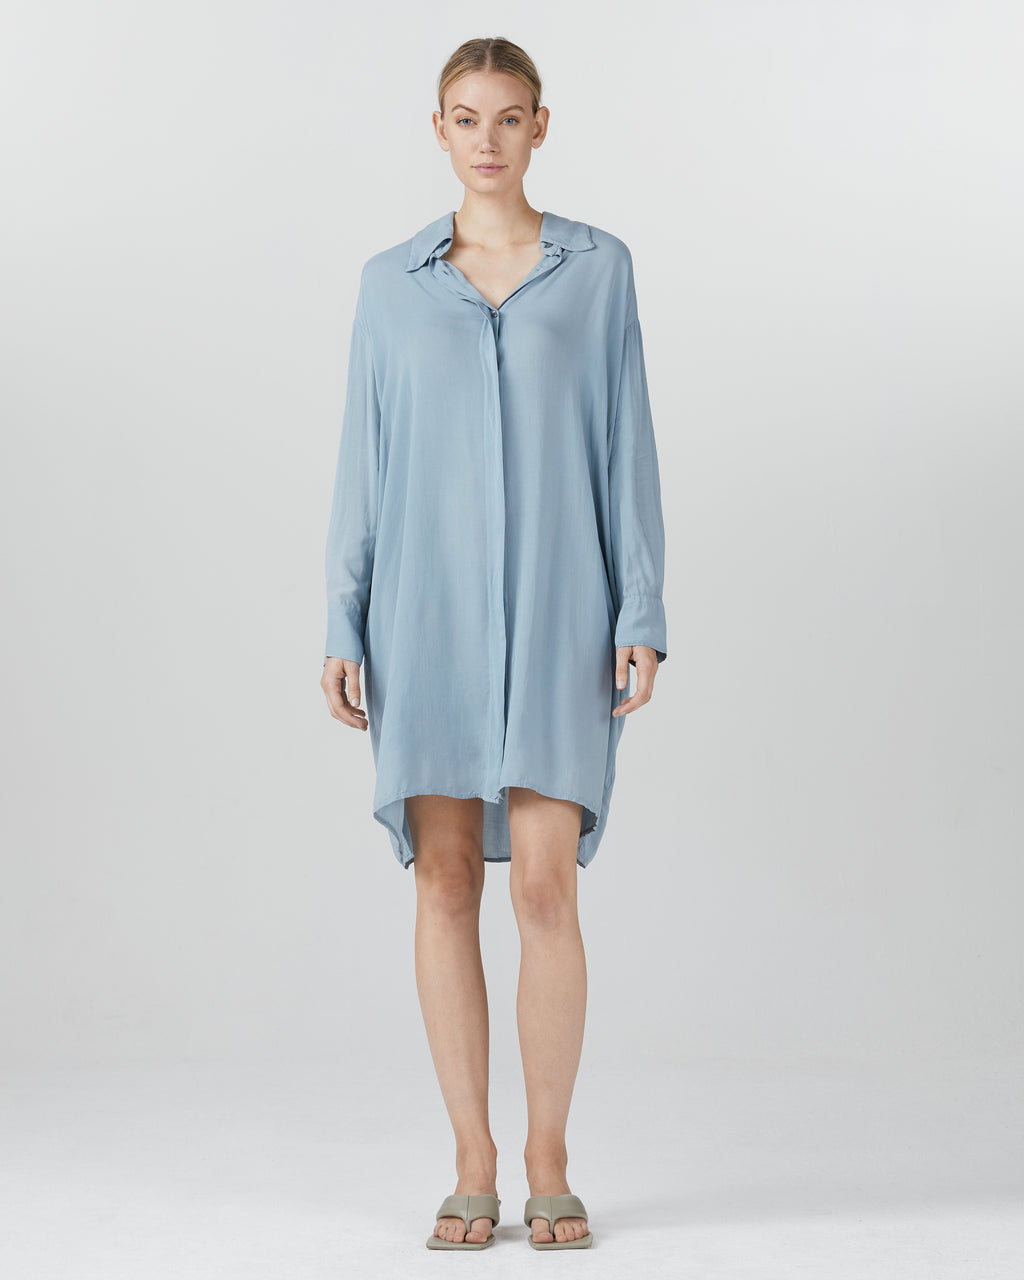 Ilse Smart Casual Dress with buttons and long sleeves